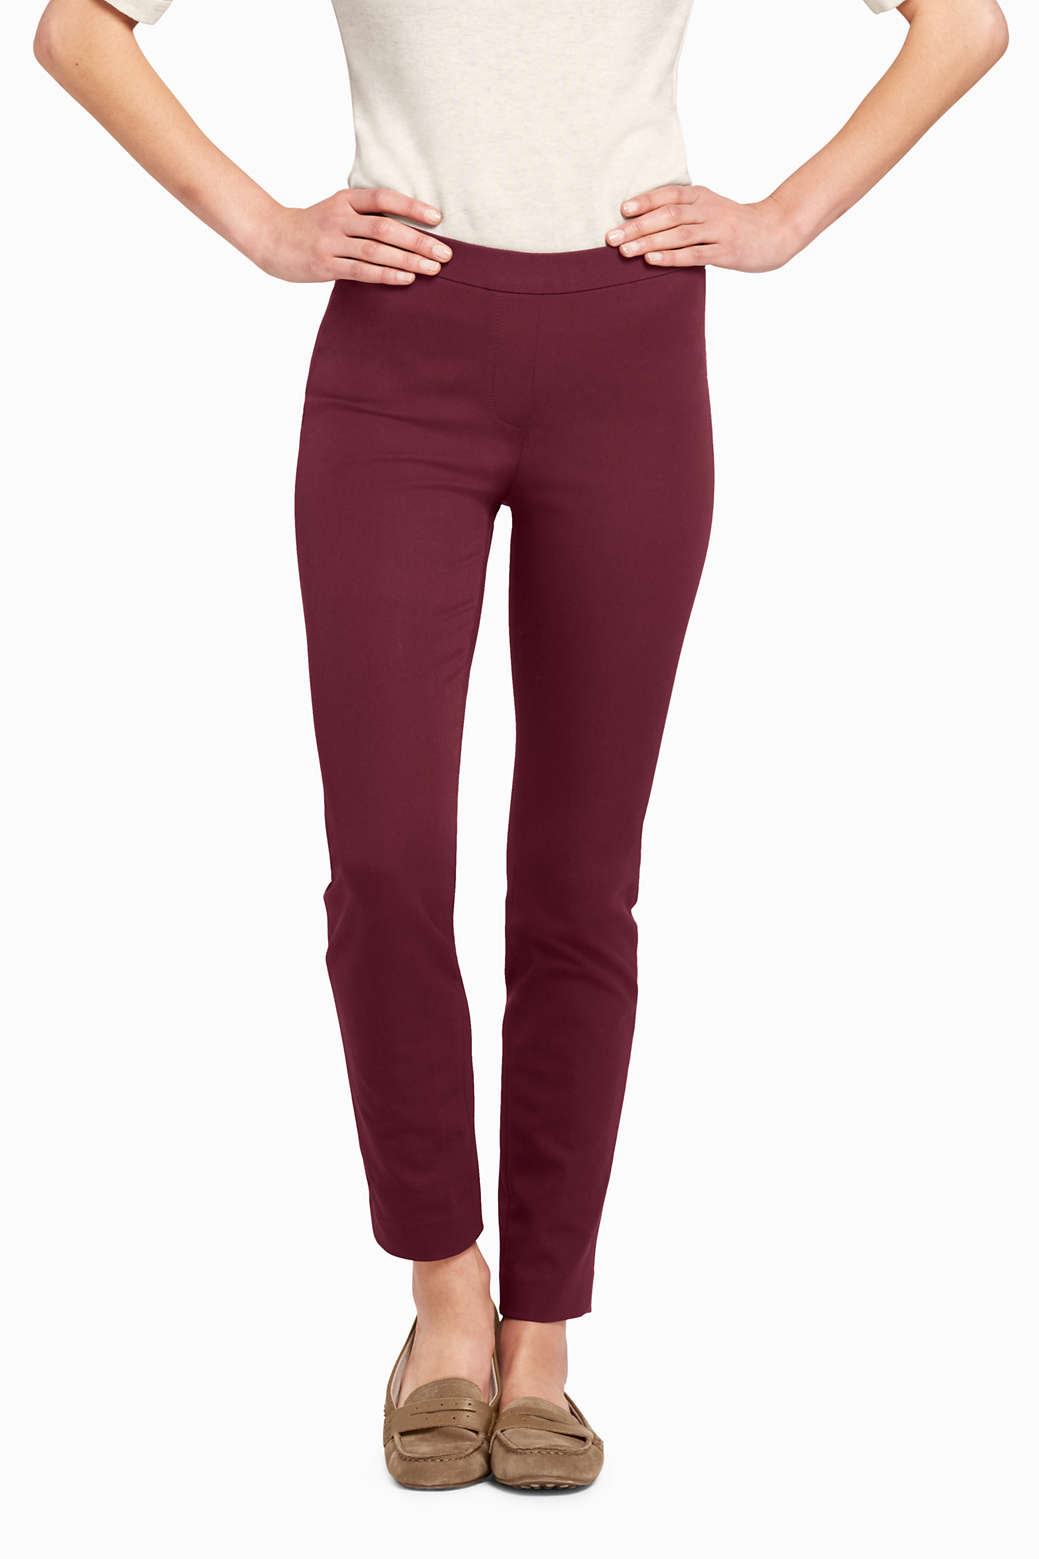 489a311ab8e Women s Mid Rise Bi-Stretch Pull-on Ankle Pants from Lands  End